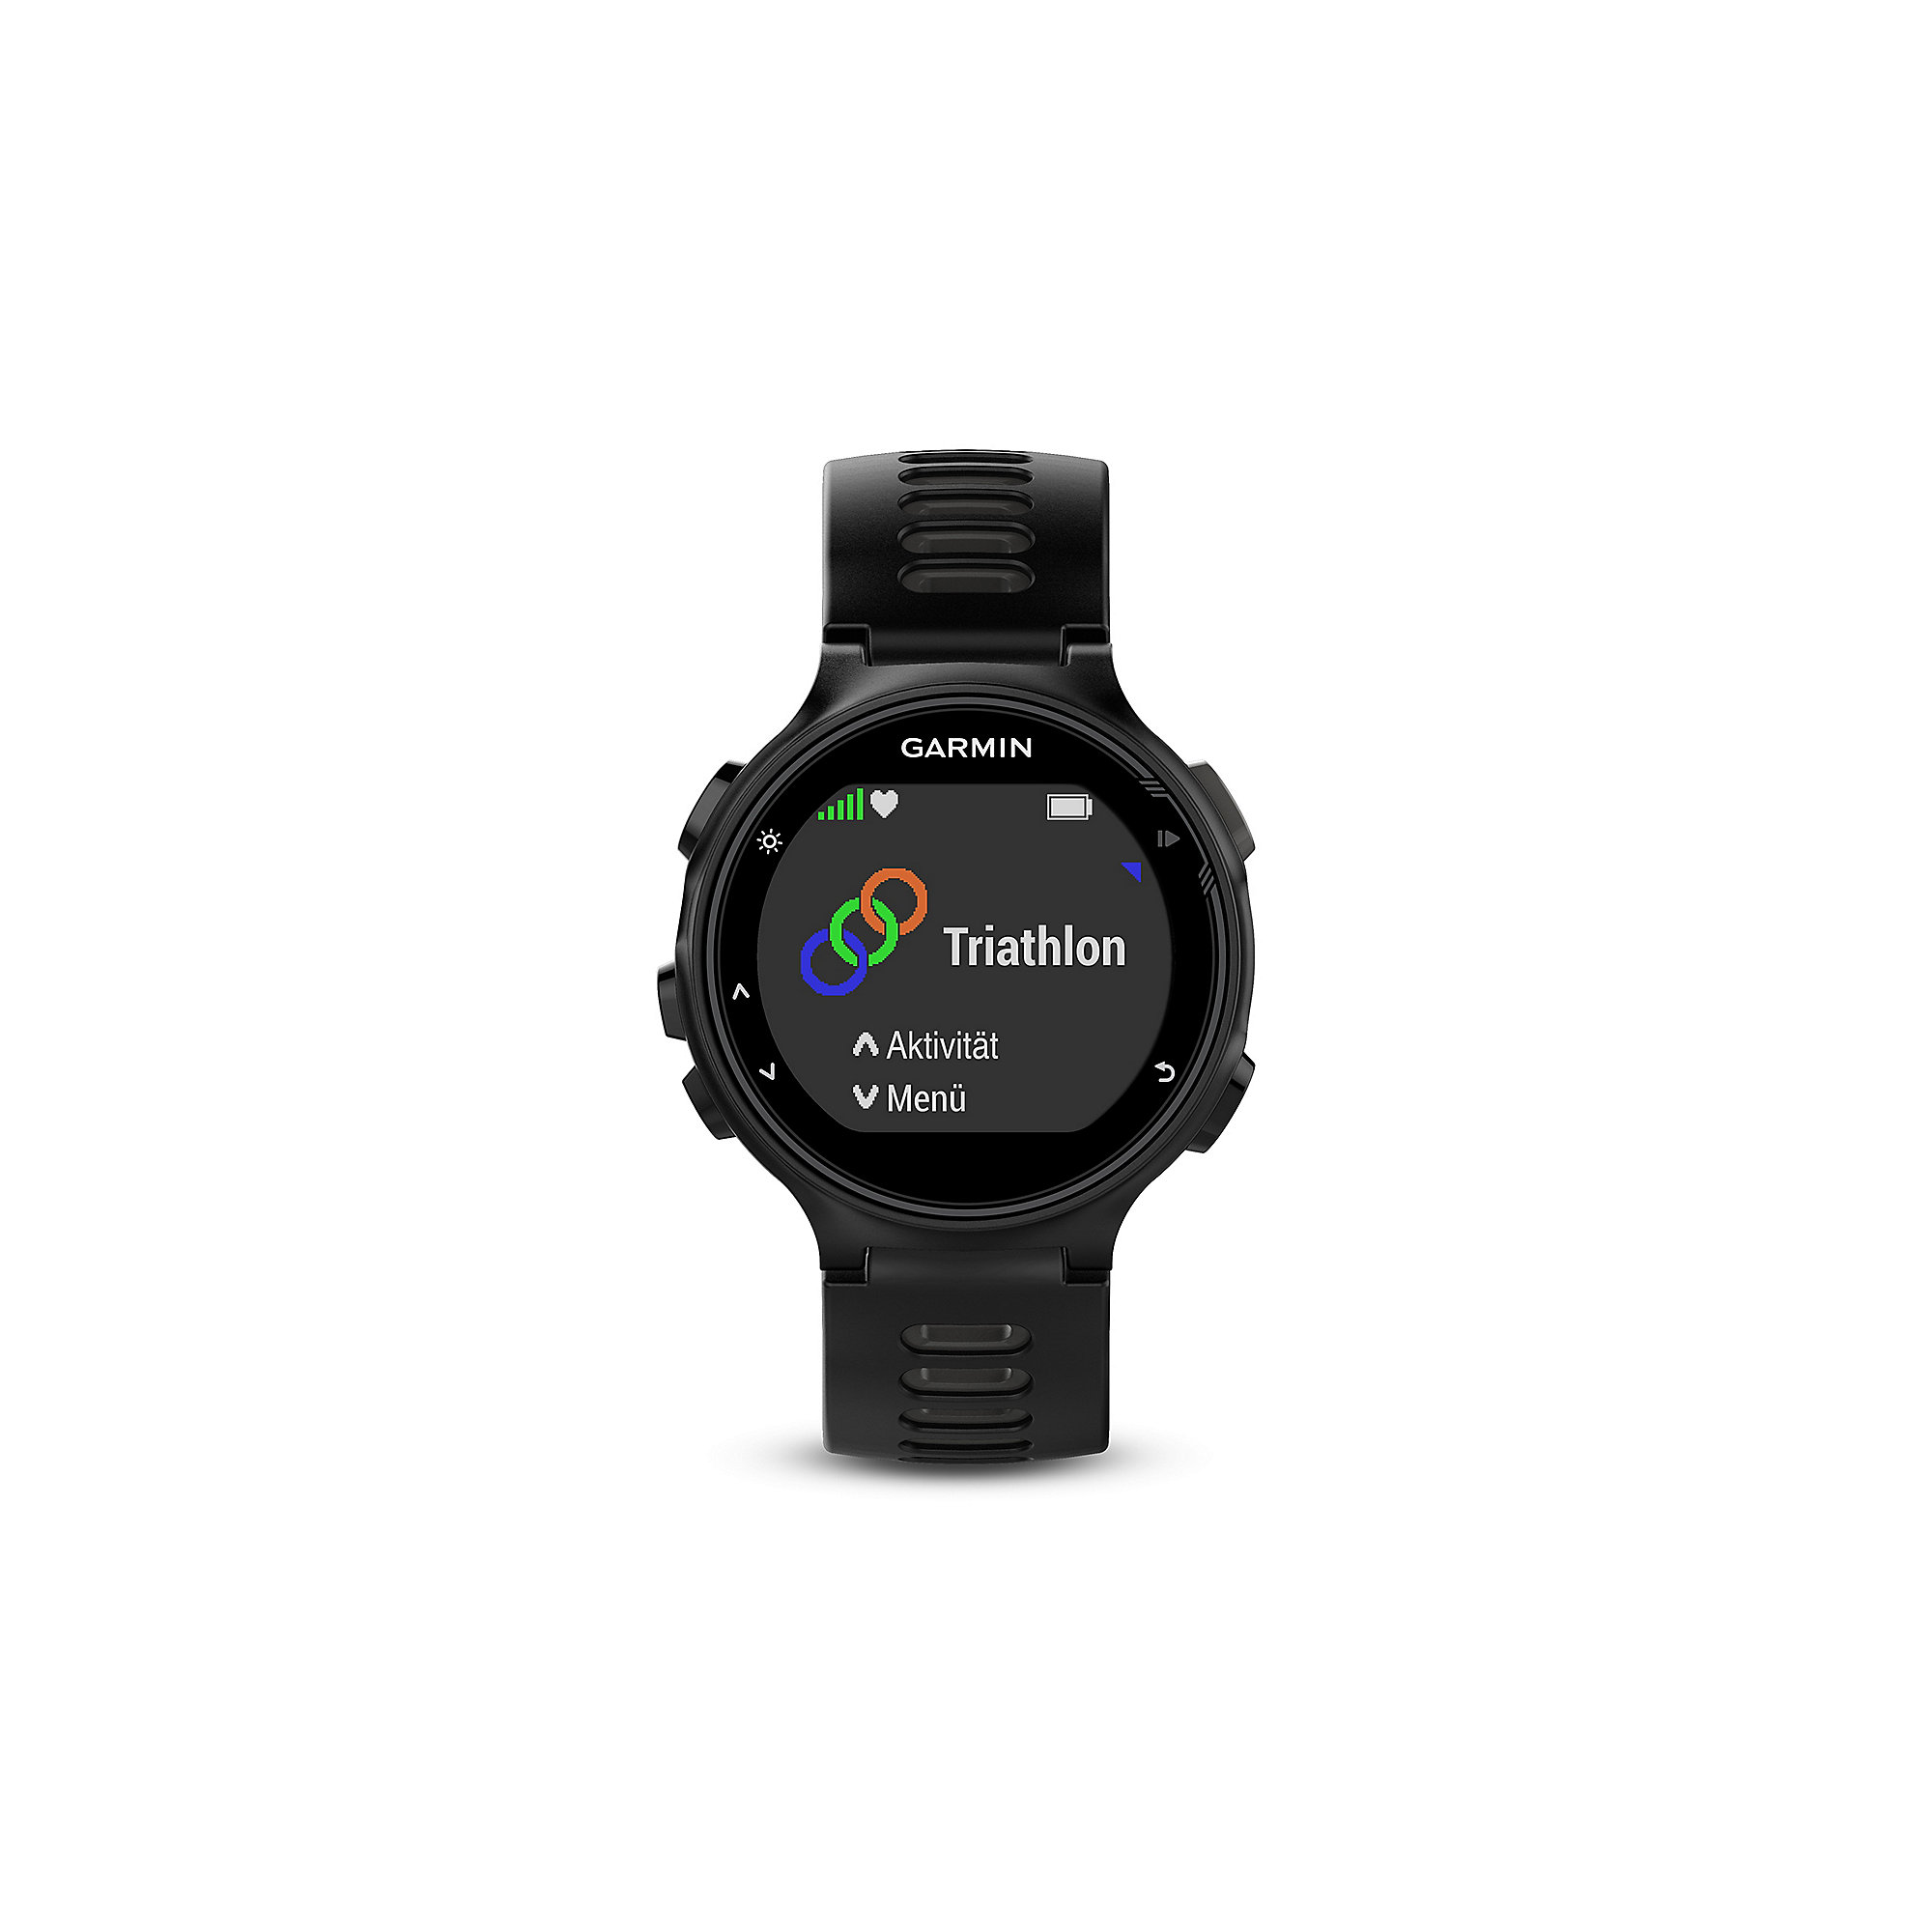 Garmin Forerunner 735XT schwarz/grau Run Bundle inkl. Brustgurt